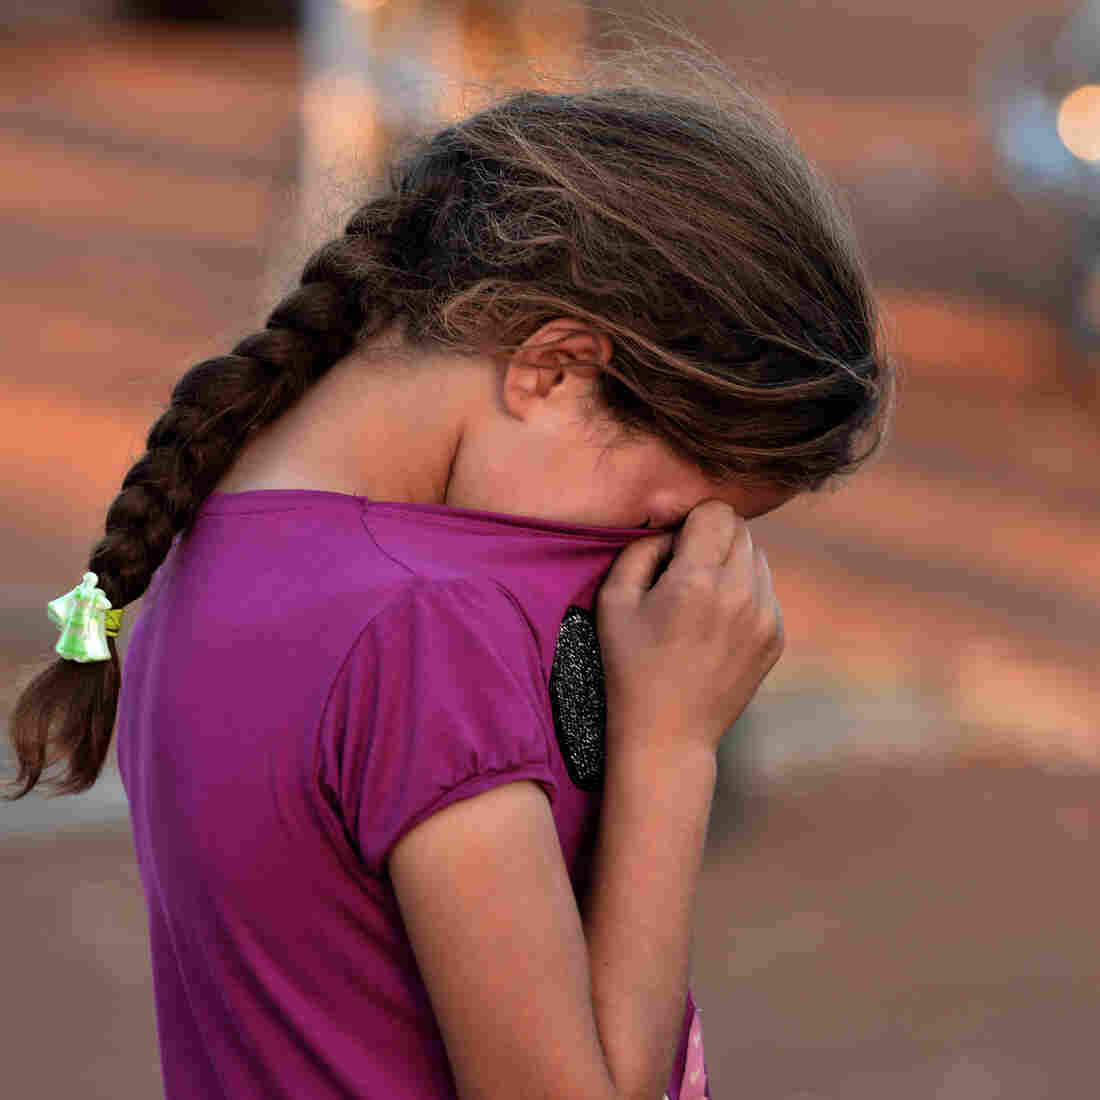 A young Syrian girl wiped her tears after not being allowed entry to Turkey last month. Thousands of Syrians have fled to neighboring countries to escape the civil war raging in their nation.